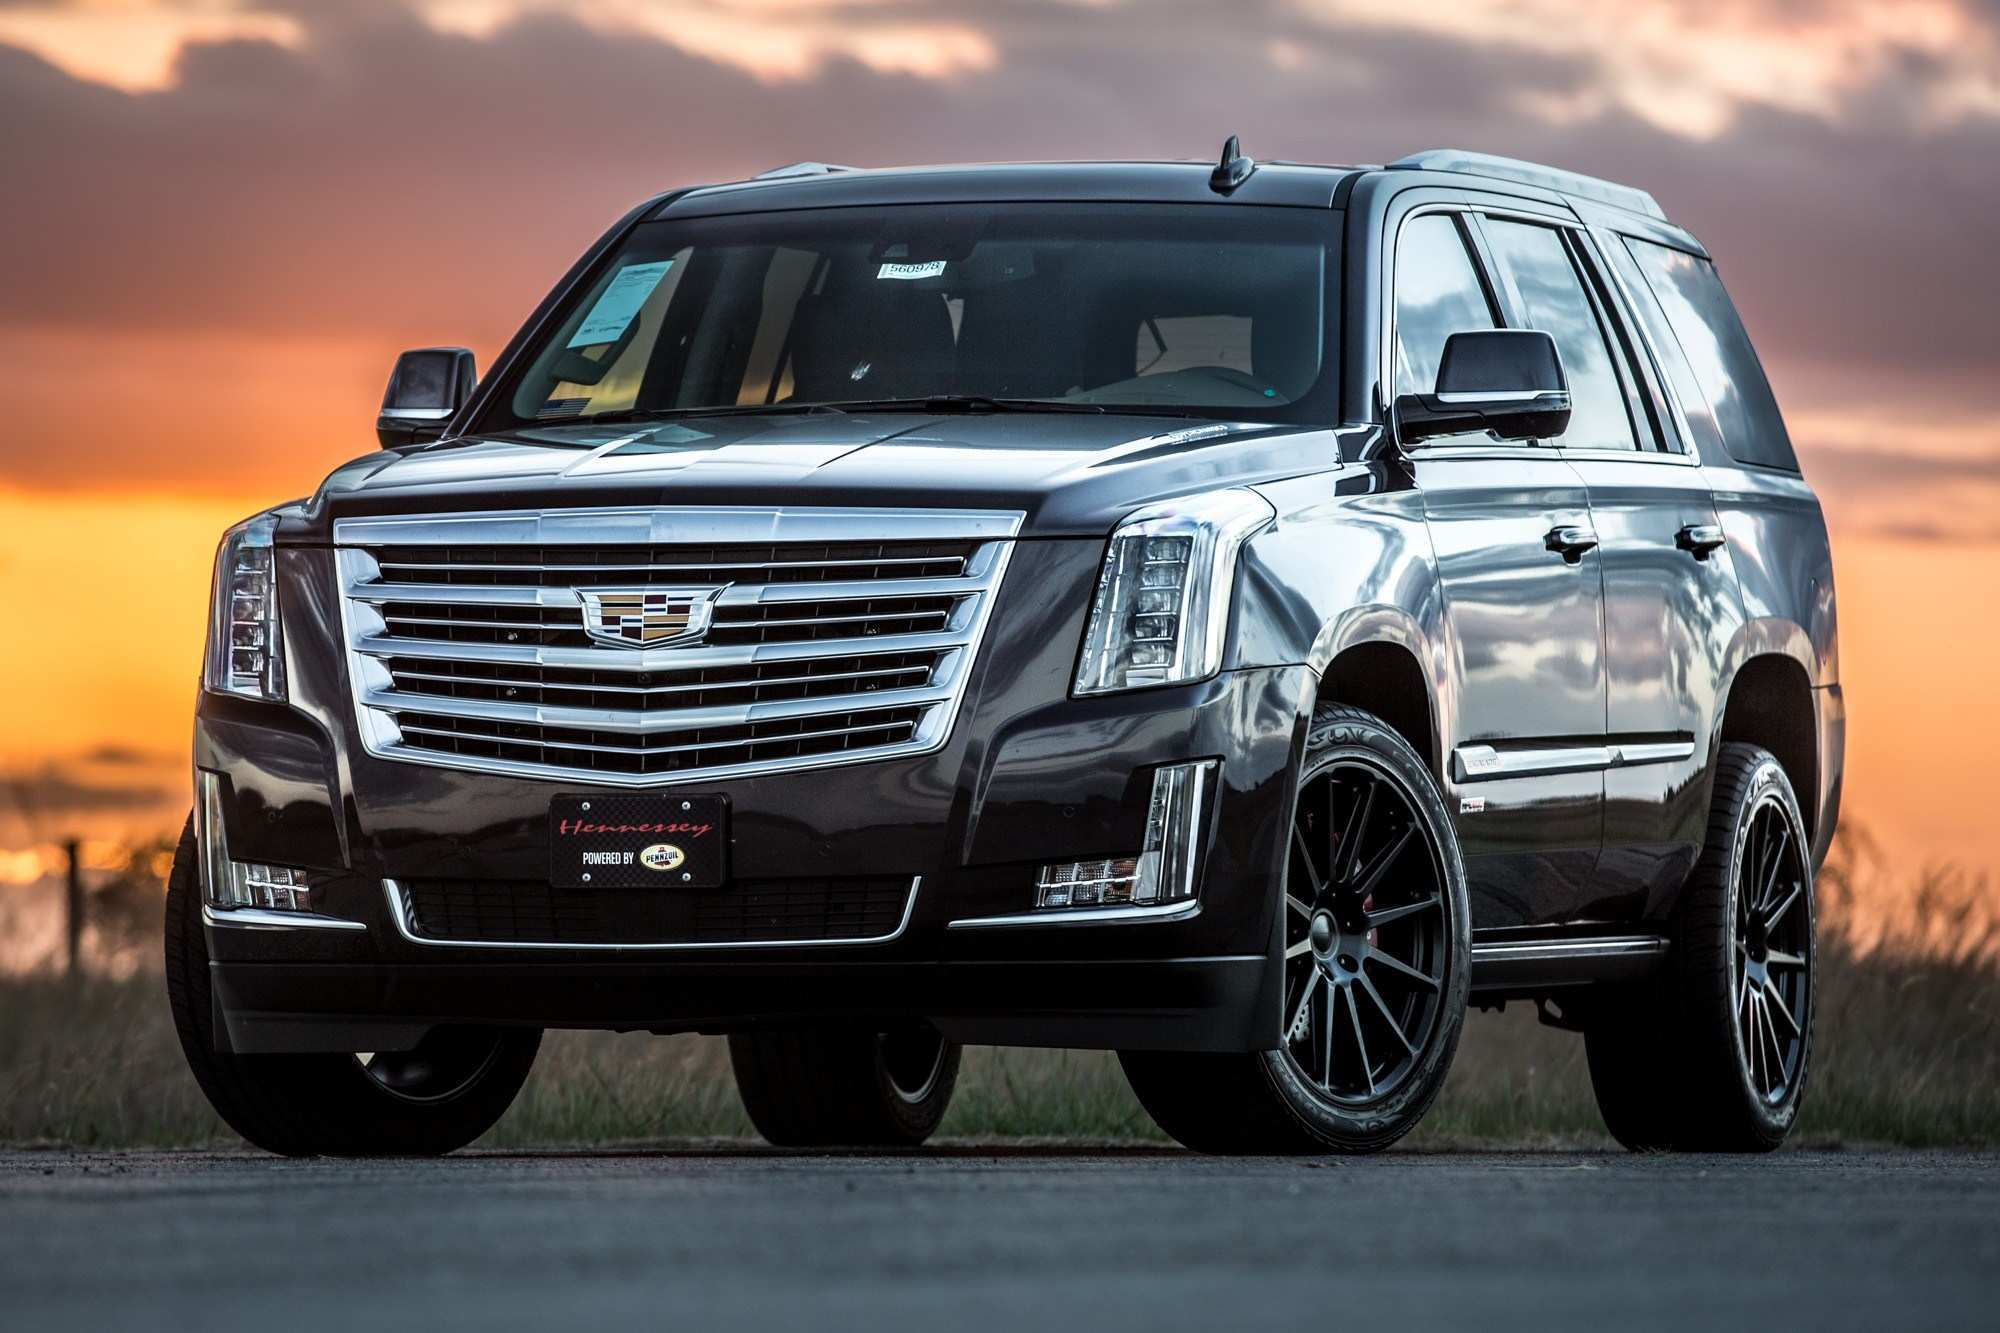 40 New 2019 Cadillac Jeep Engine